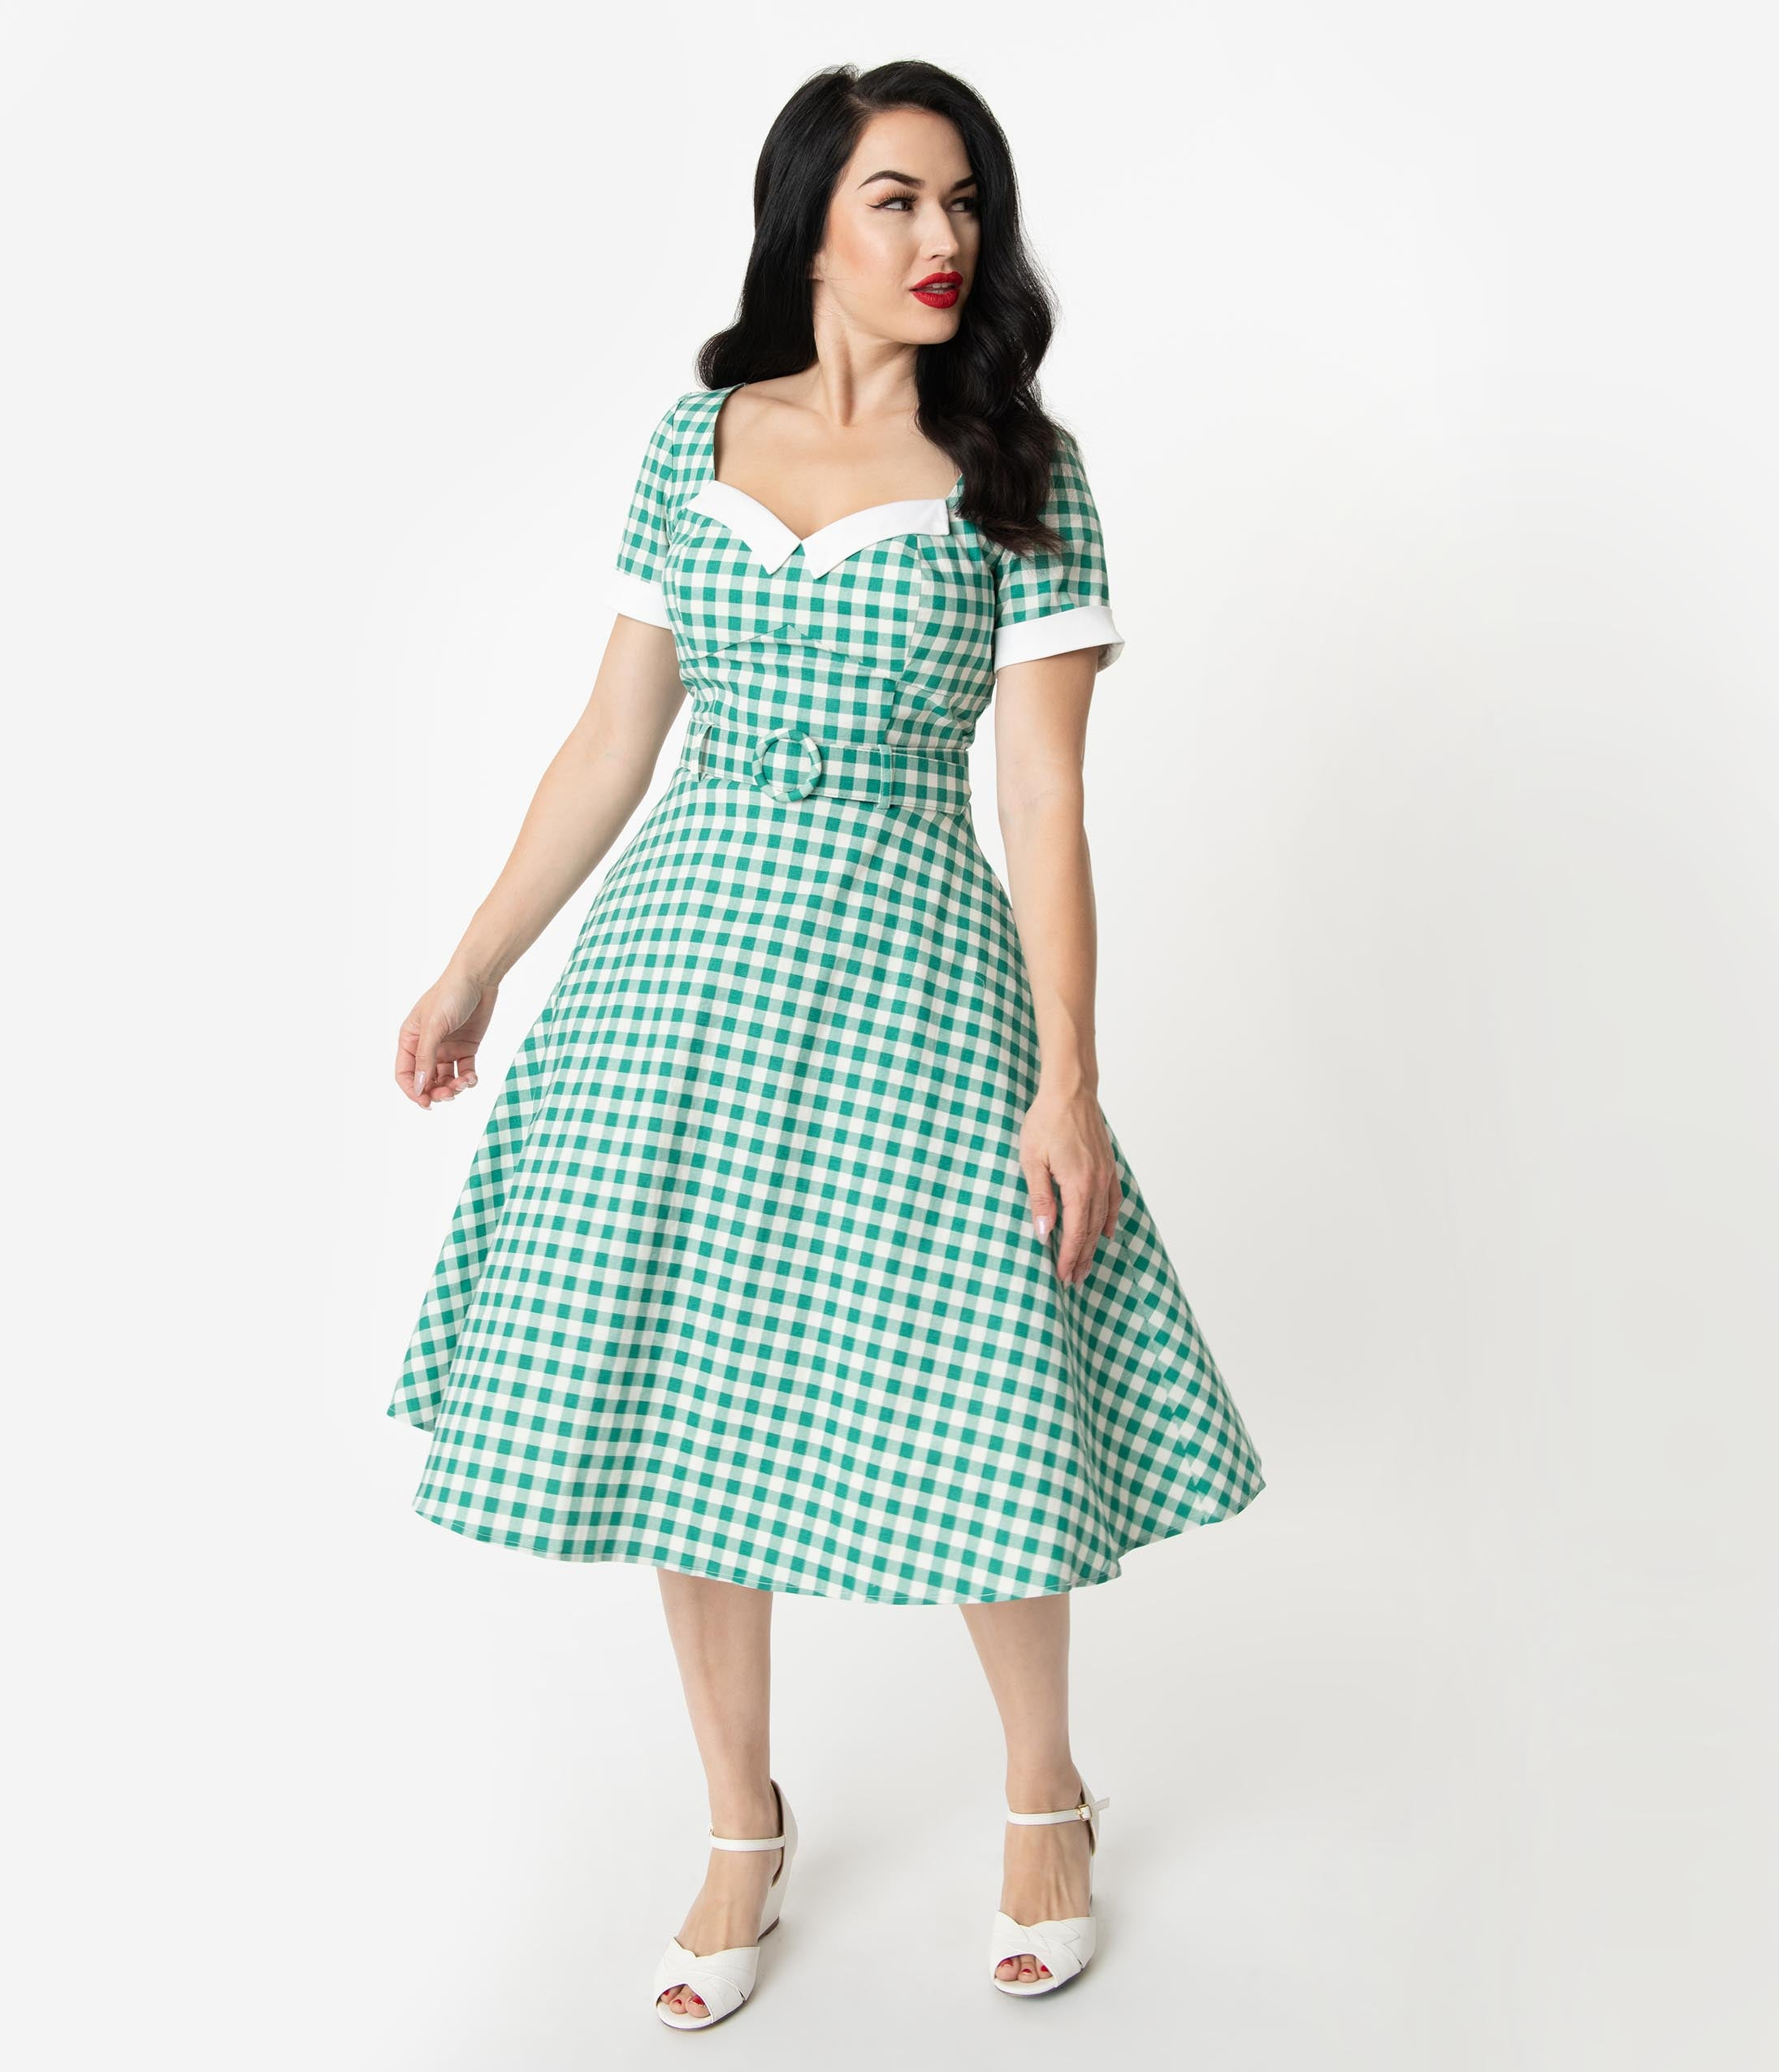 Fifties Dresses : 1950s Style Swing to Wiggle Dresses Collectif 1950S Style Green  Ivory Gingham Roberta Swing Dress $78.00 AT vintagedancer.com